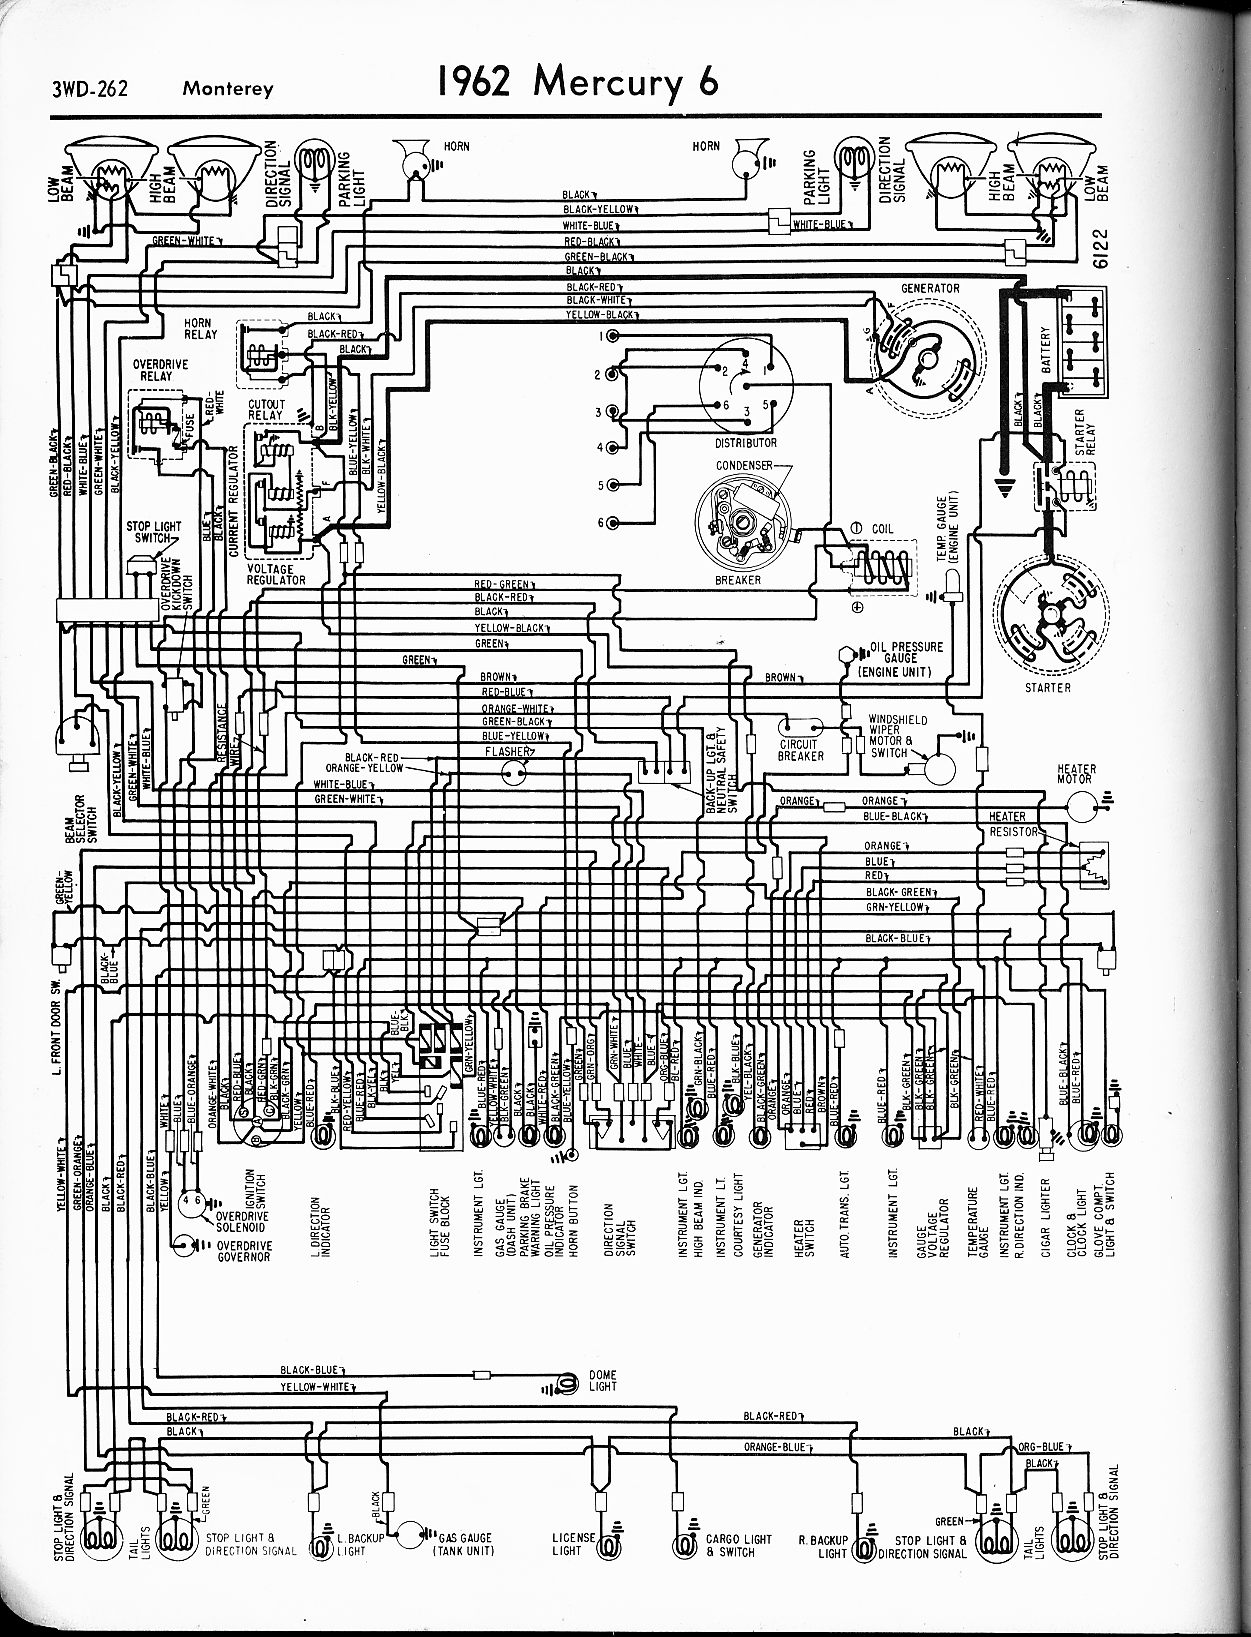 mercury wiring diagrams the old car manual project rh oldcarmanualproject com 1963 Nova Wiring Diagram 66 Nova Wiring Diagram